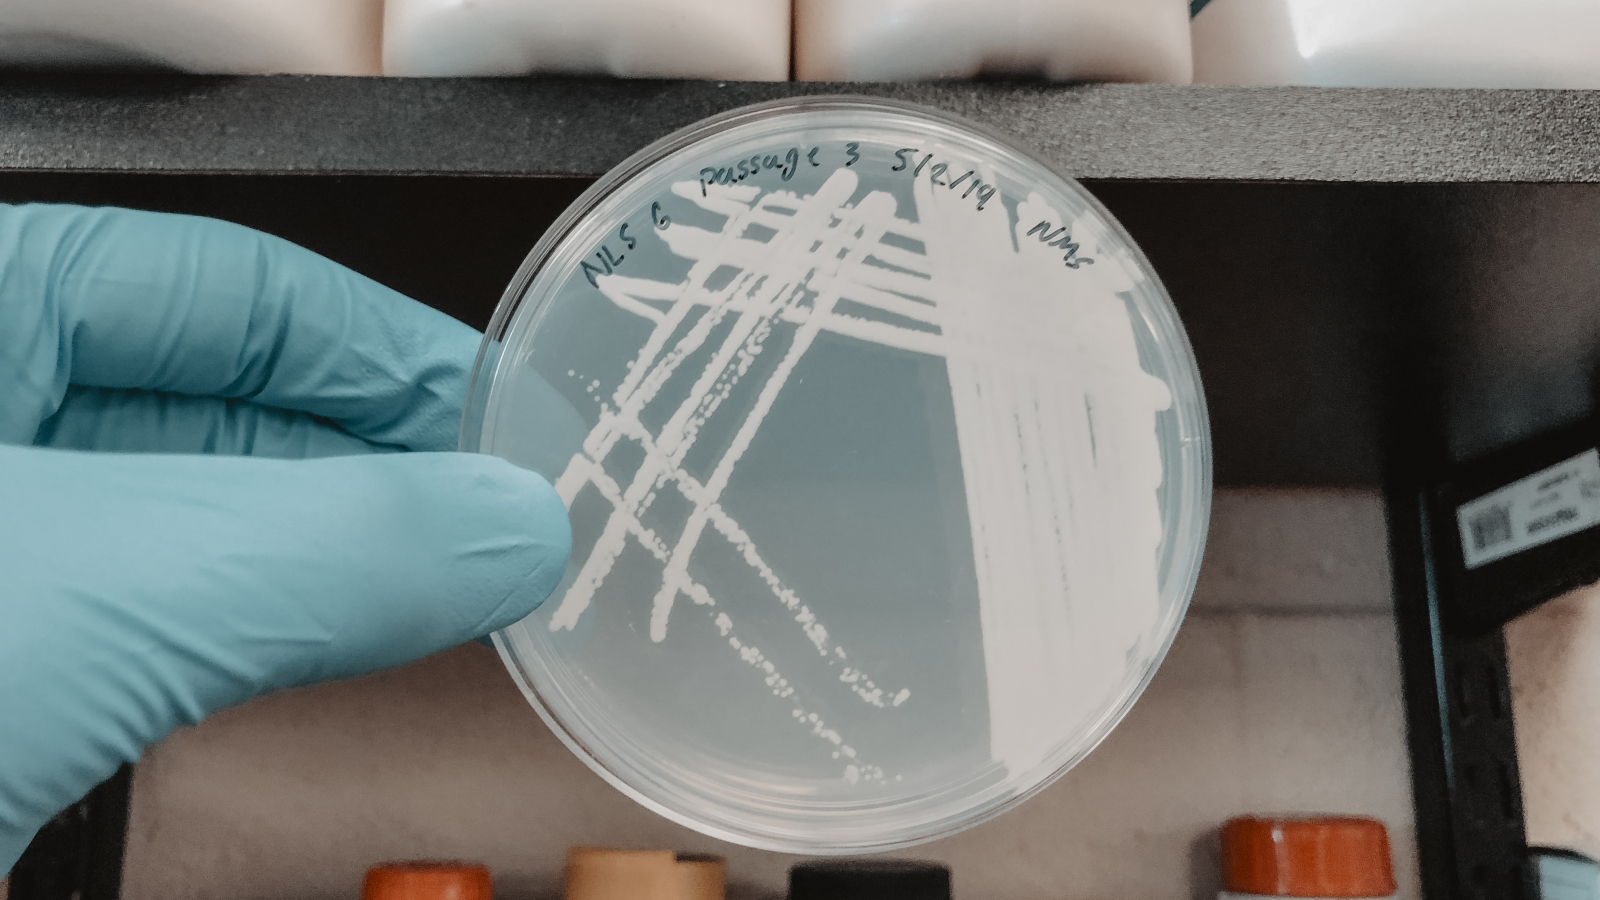 Petri plate with colonies of a methanotrophic microorganism